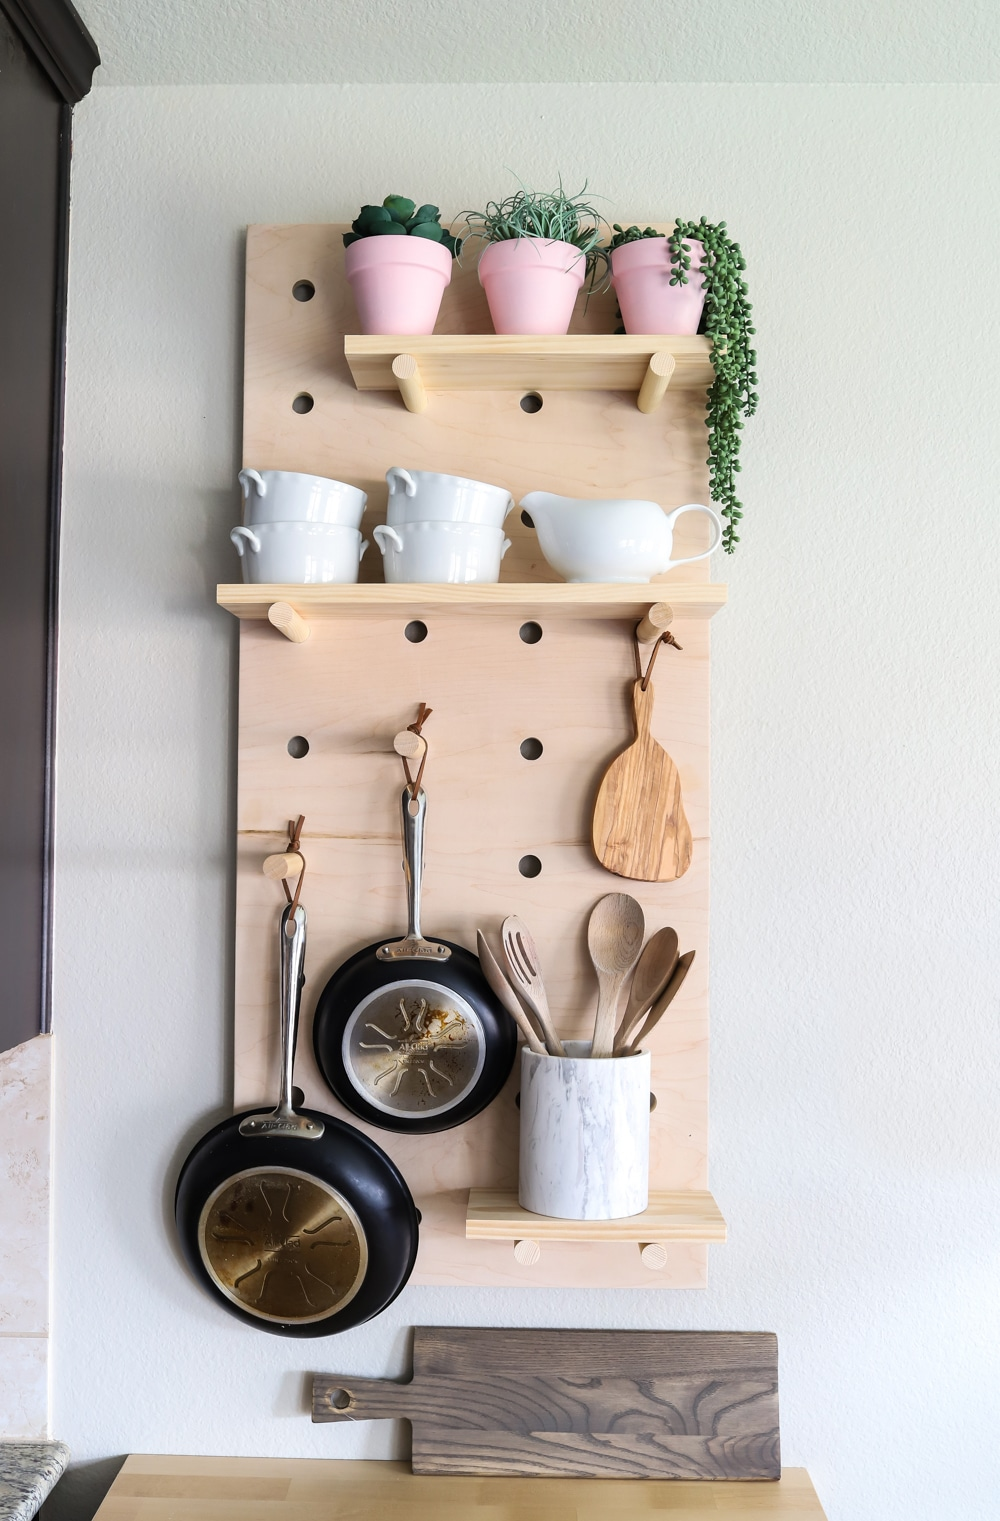 How to make DIY oversized pegboard shelves for your kitchen